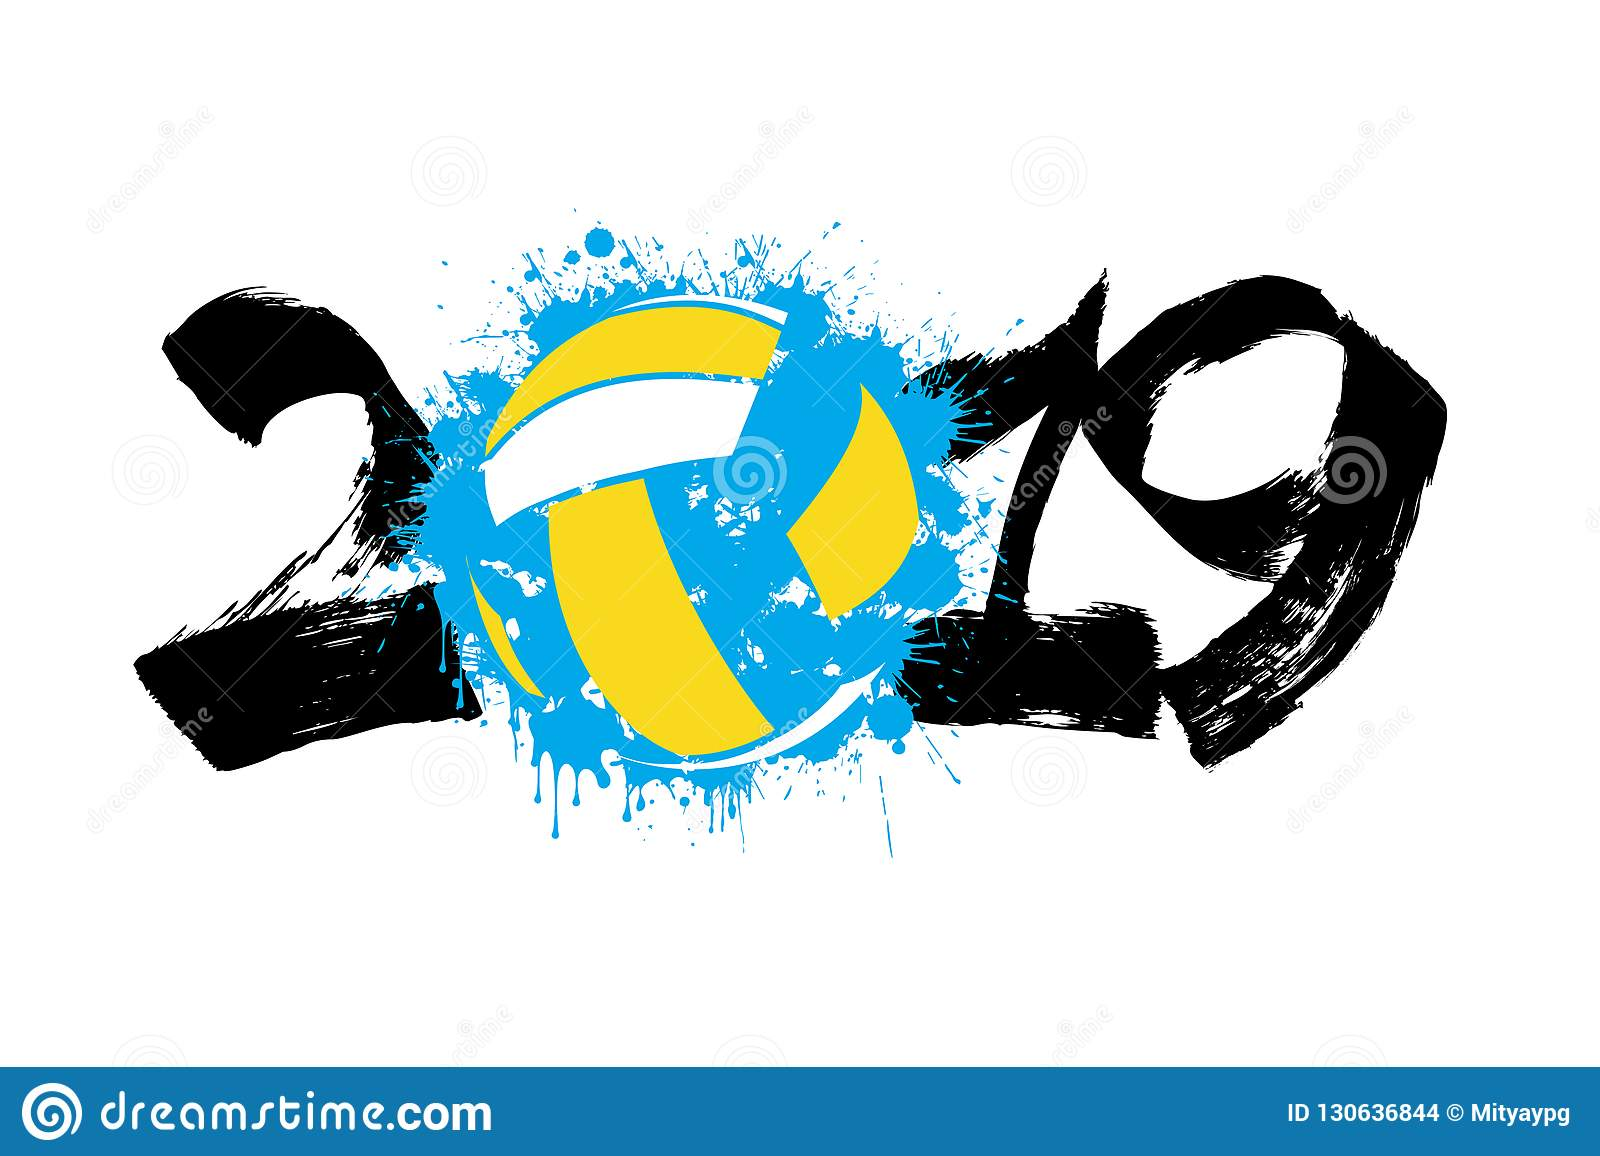 Abstract Grungy Background Volleyball Arrowhead Stock: Number 2019 And A Volleyball Ball From Blots Stock Vector